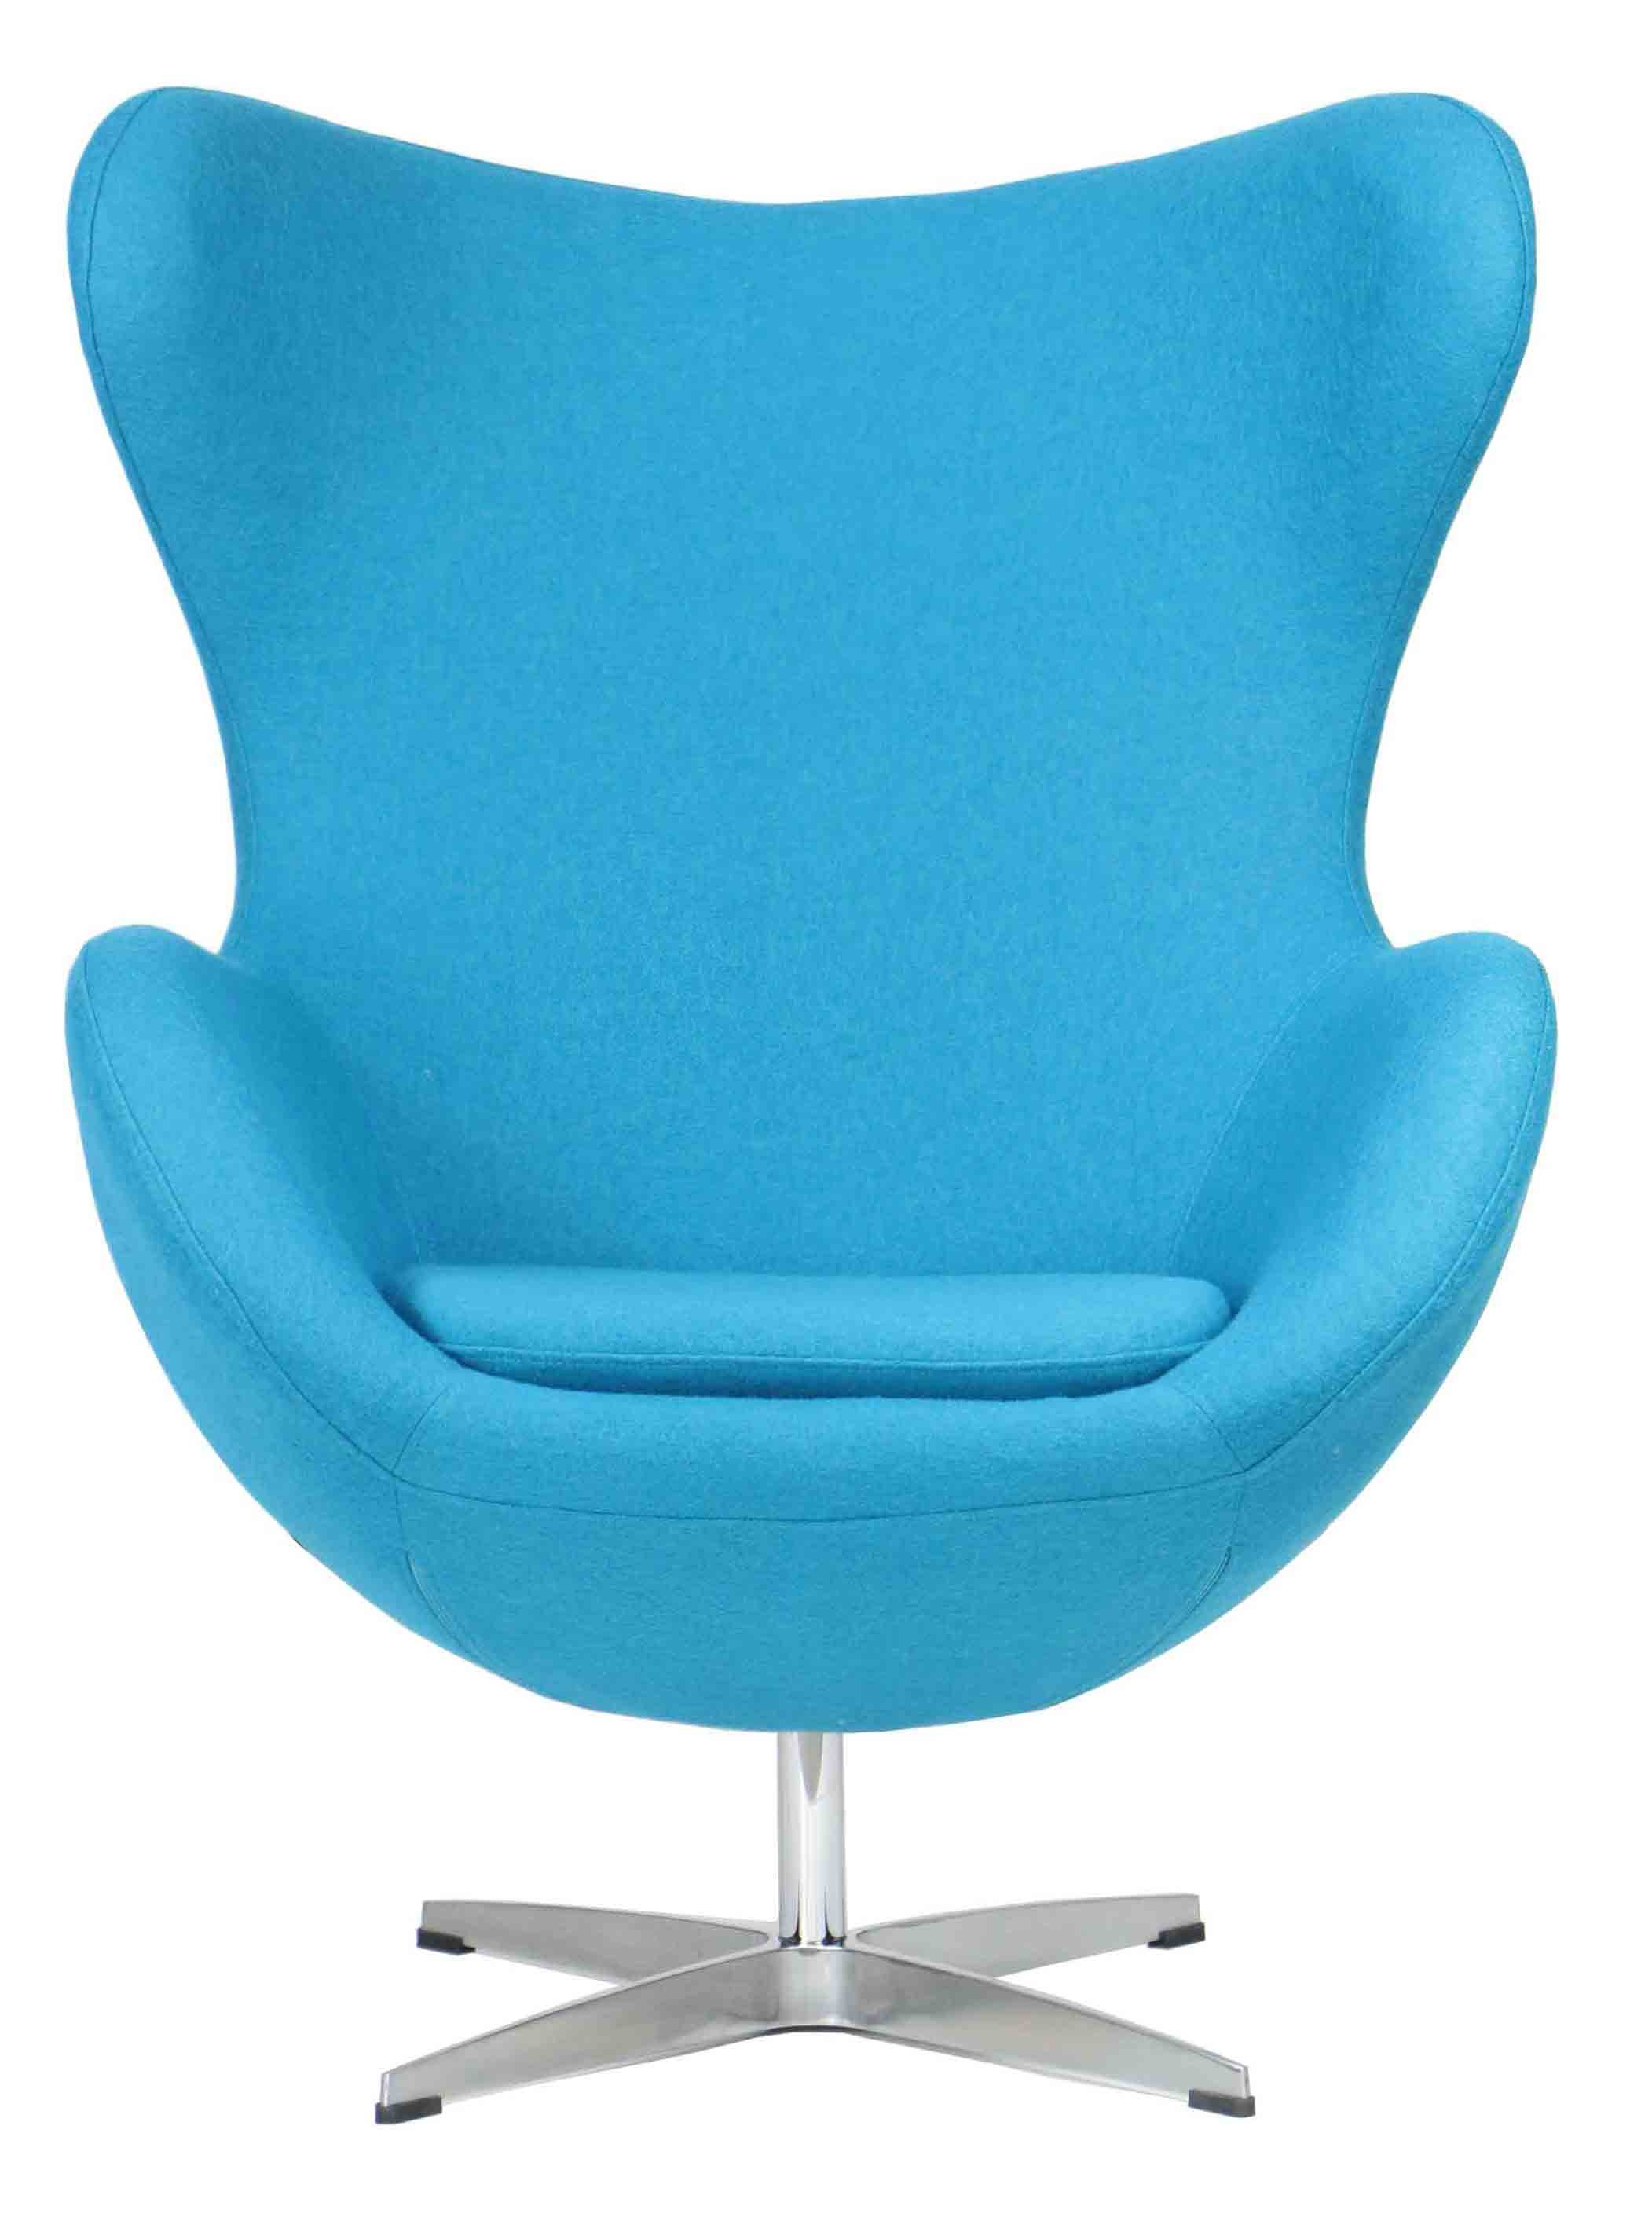 Egg Designs Furniture. Designer Replica Egg Chair In Blue Designs Furniture